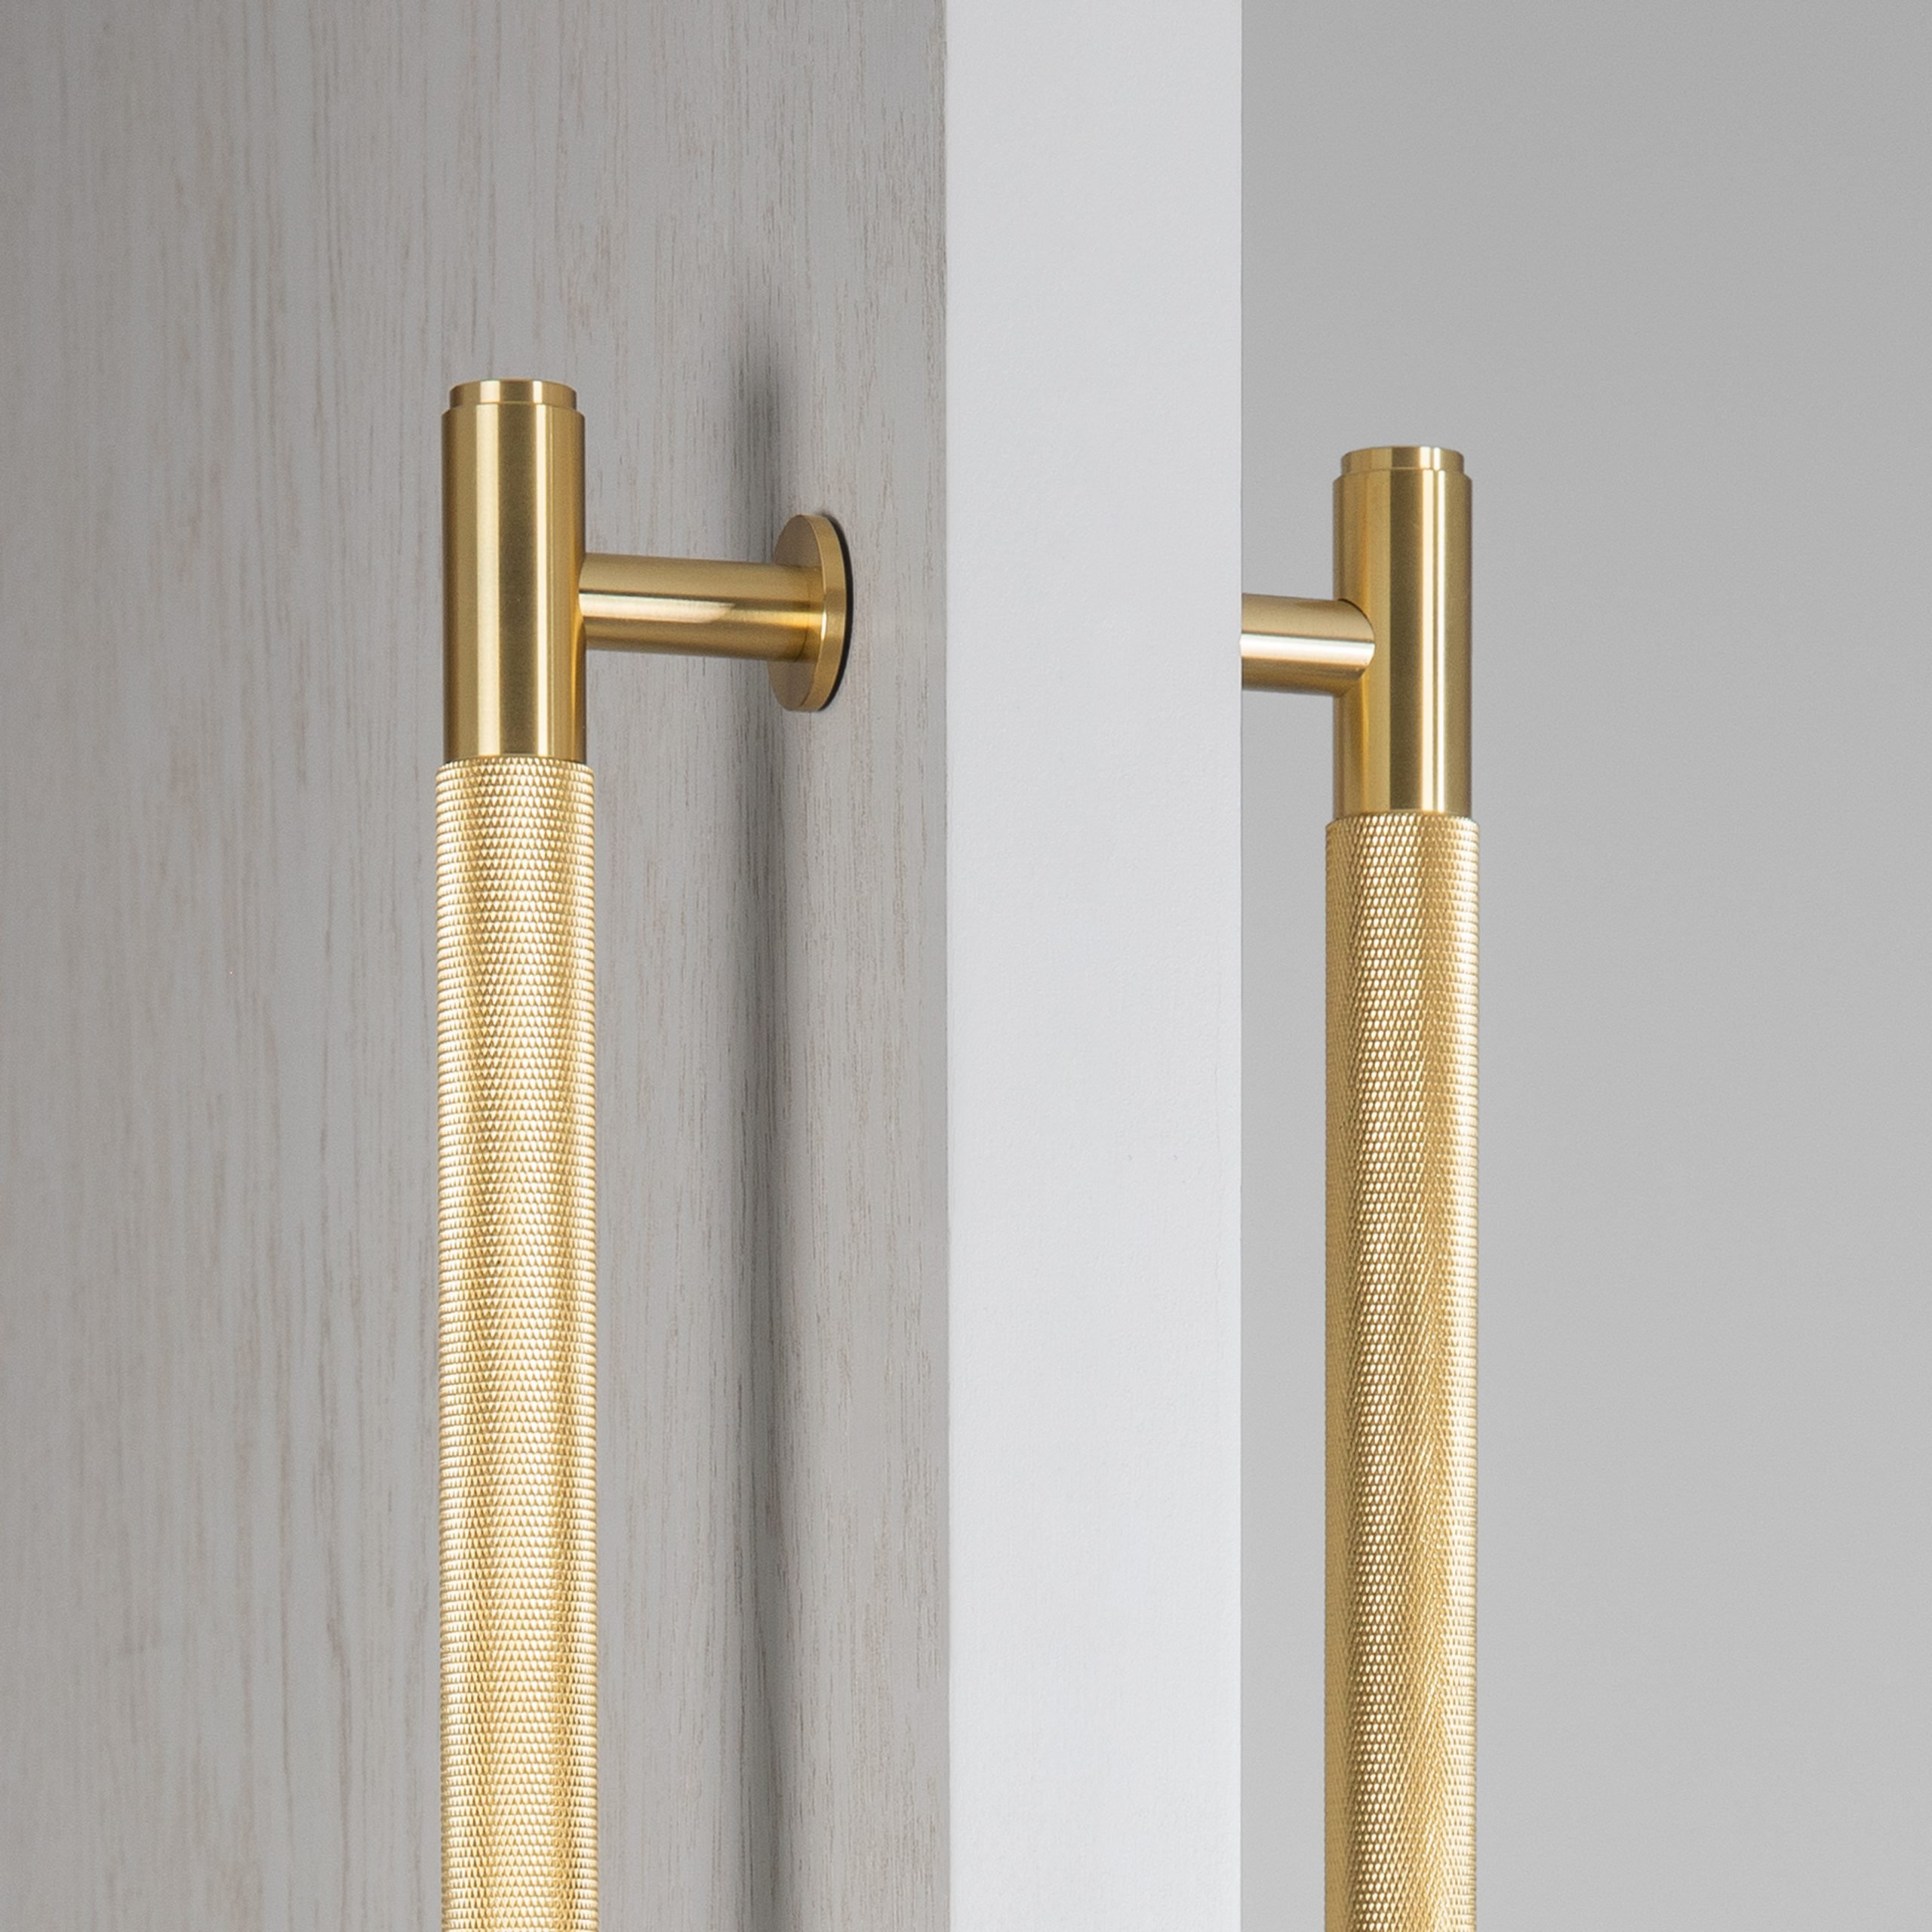 2.BP_Double_Sided_Pull_Bar_Brass